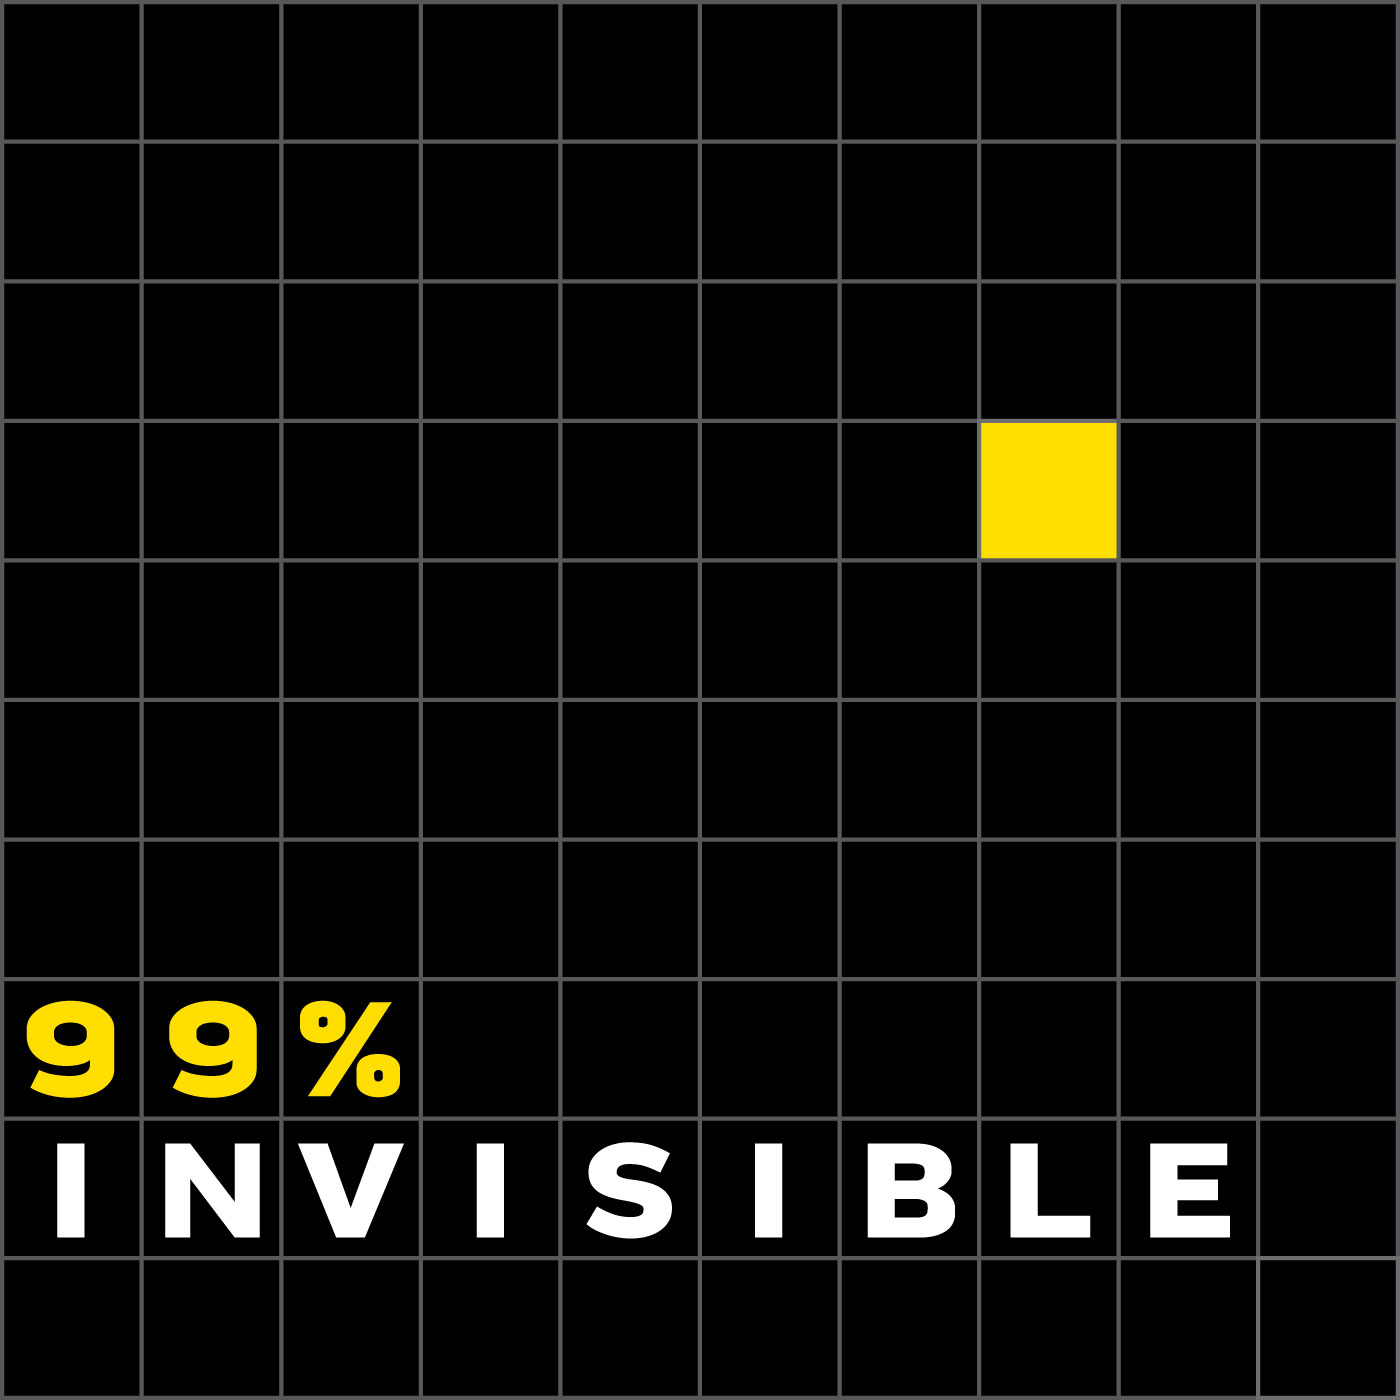 99%_Invisible_logo.jpg